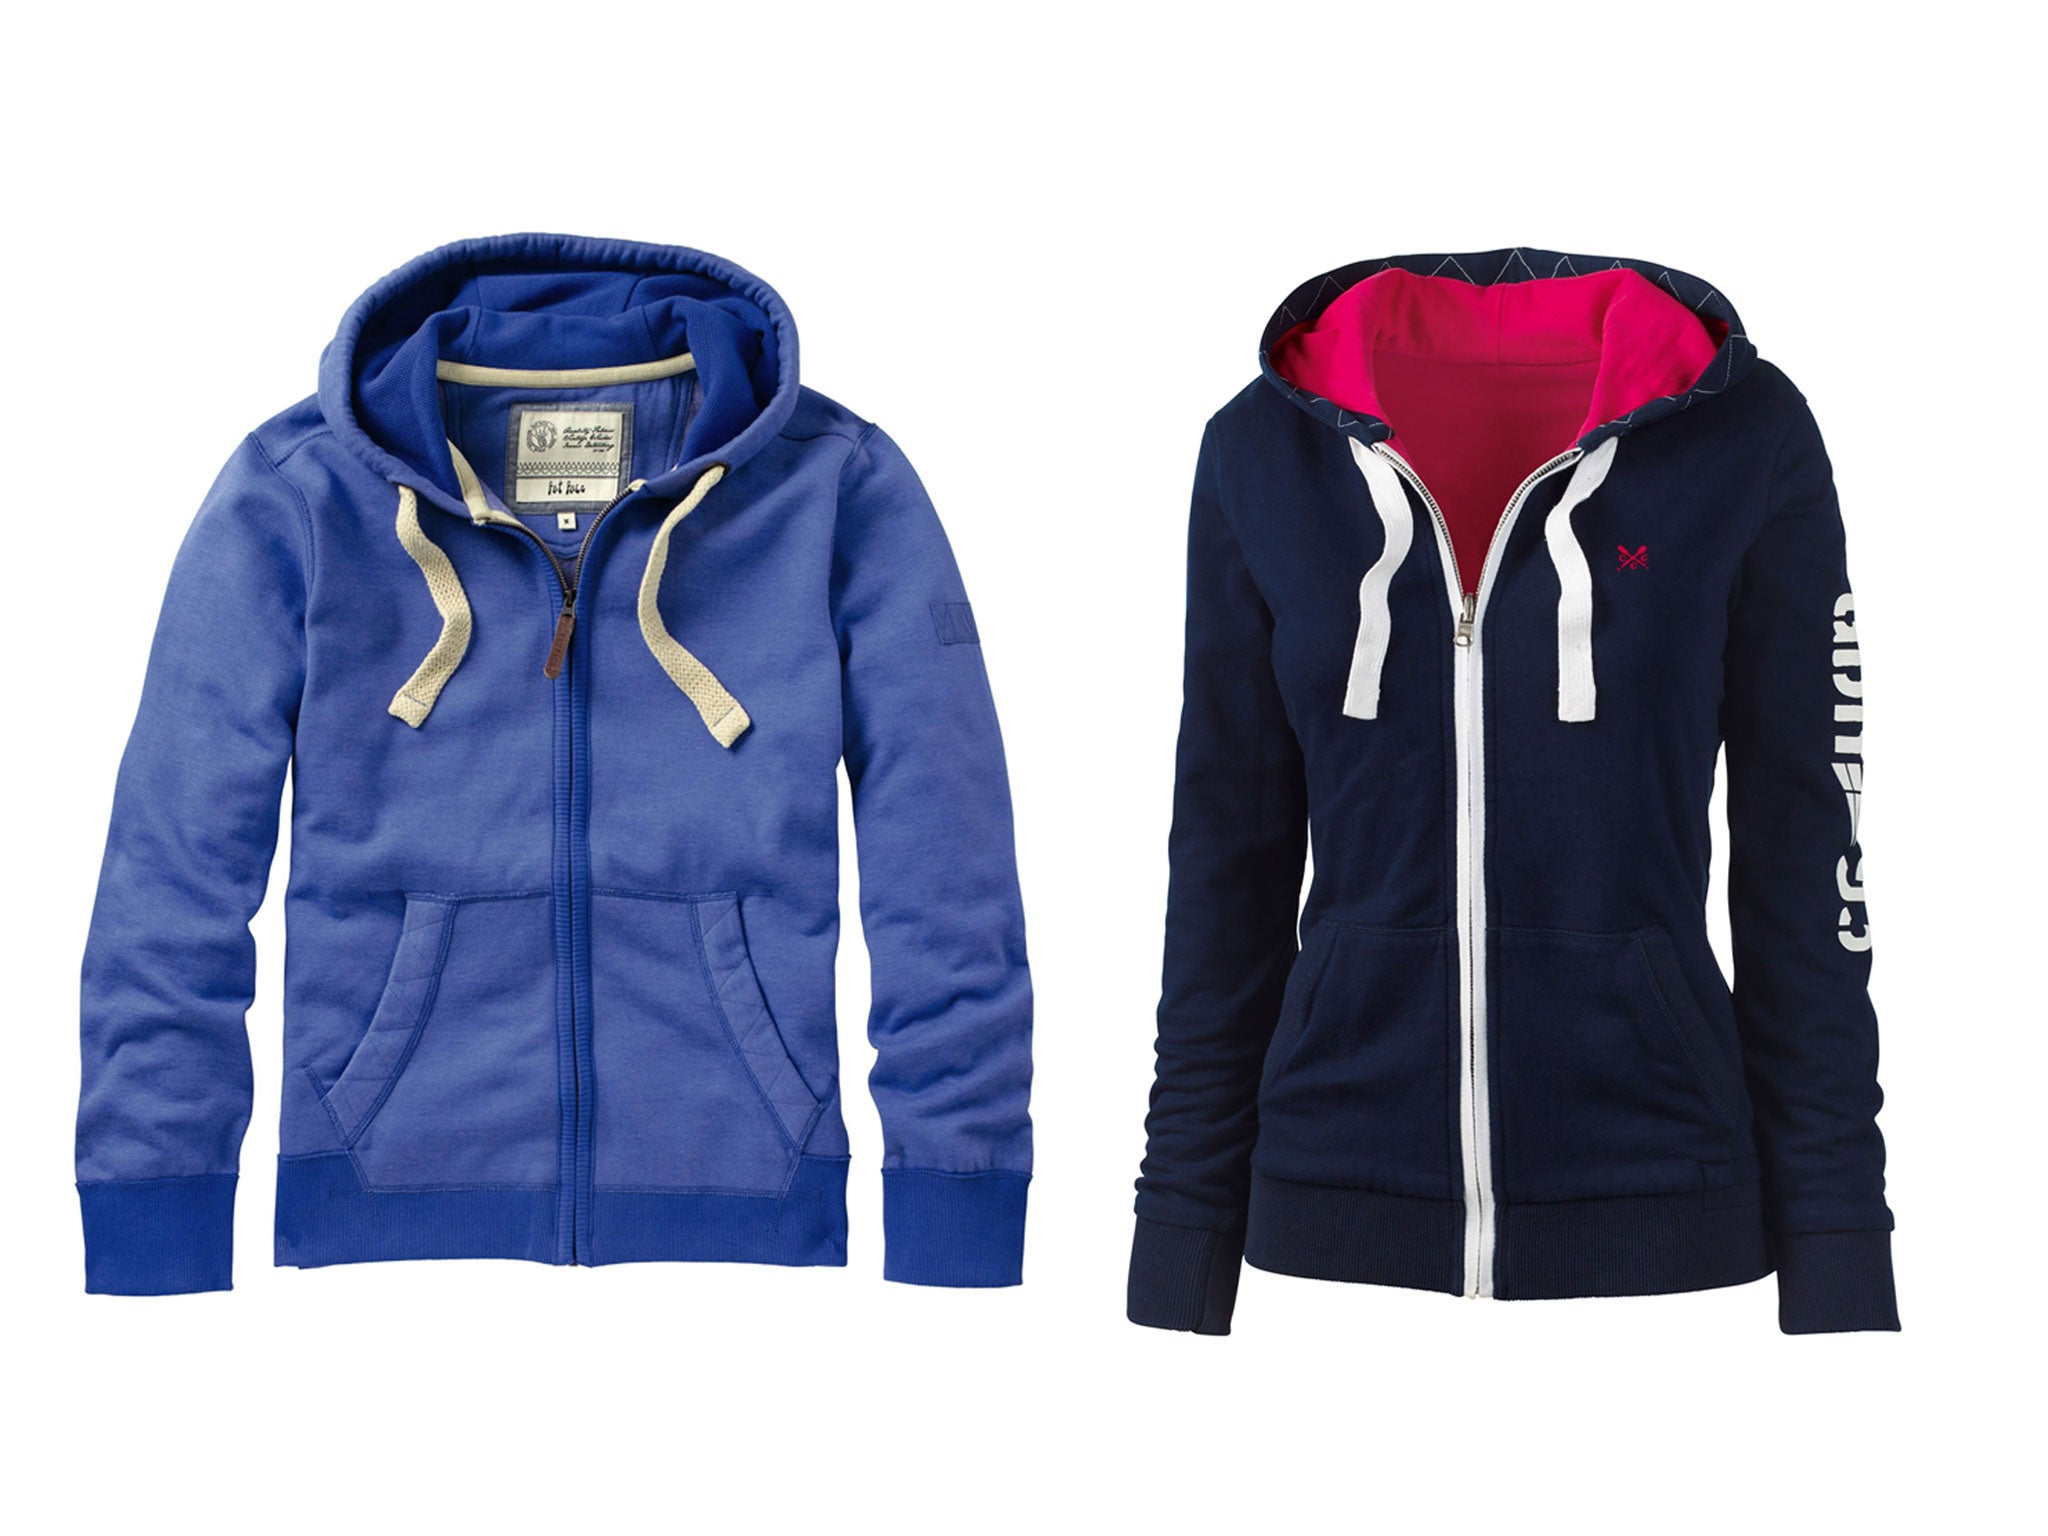 c12be80f6b8 Layer up: 9 best hoodies | The Independent